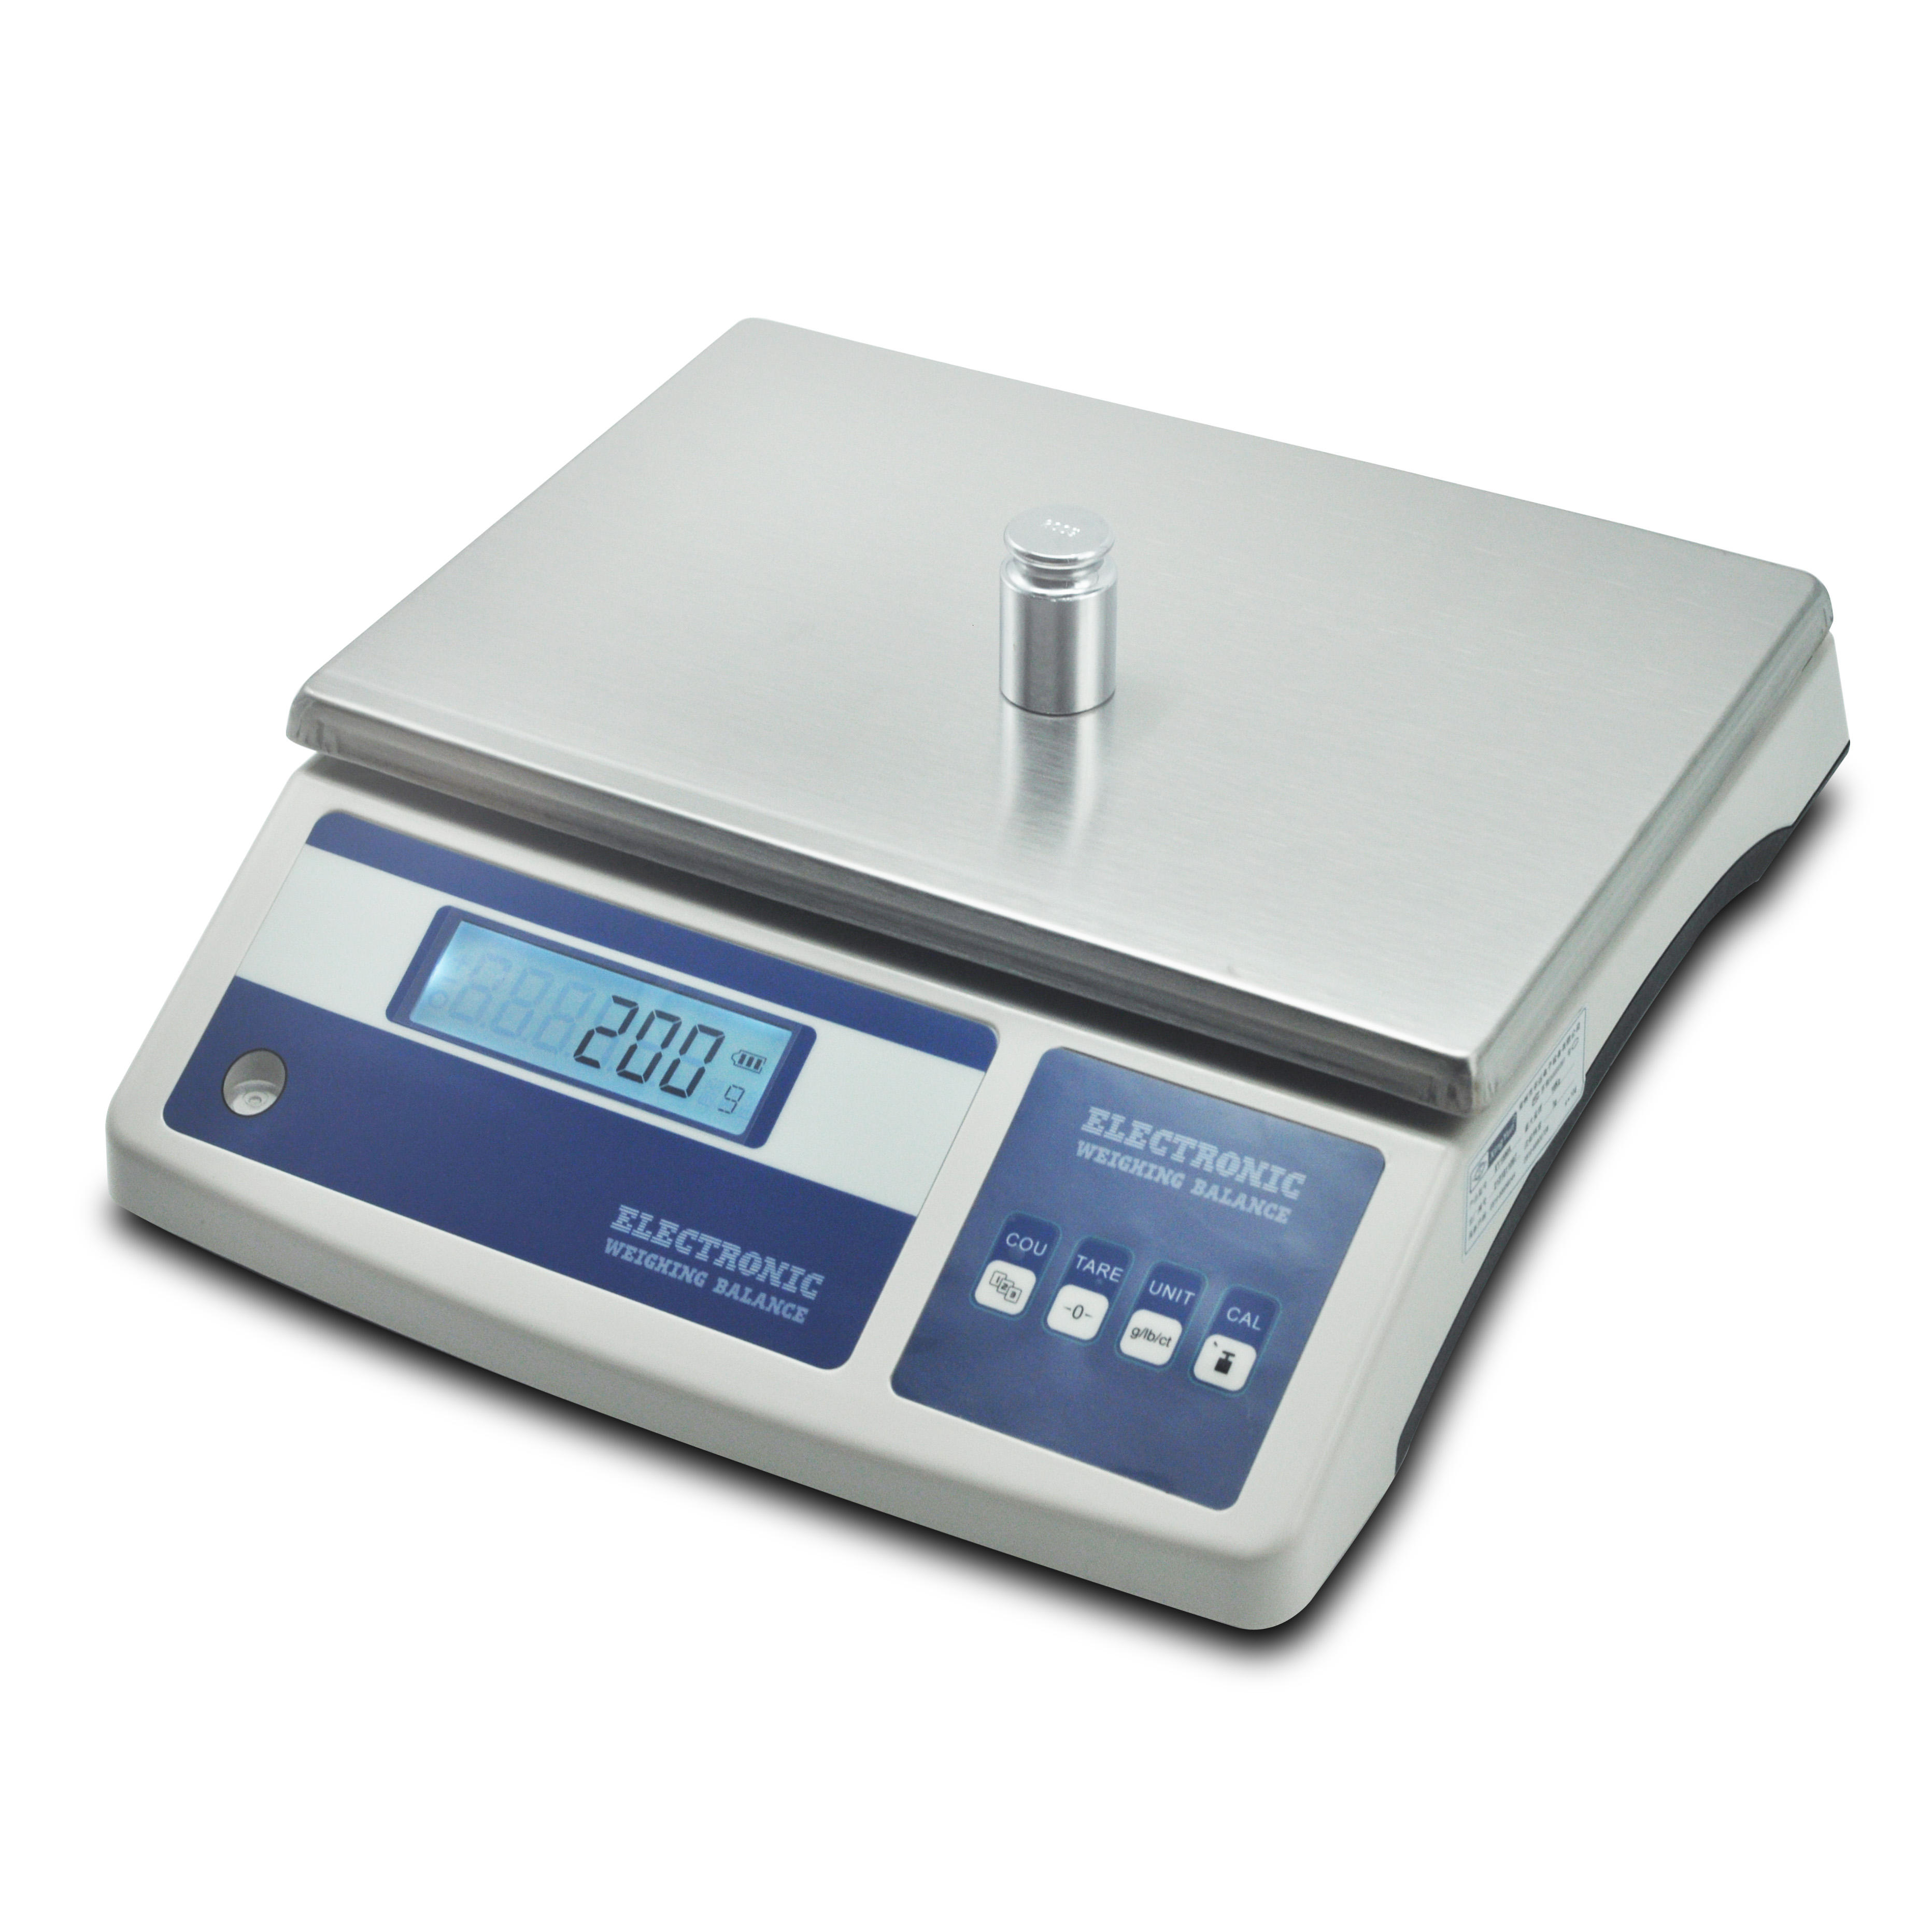 RS232 interface cheap digital weight balanza scale 0.1